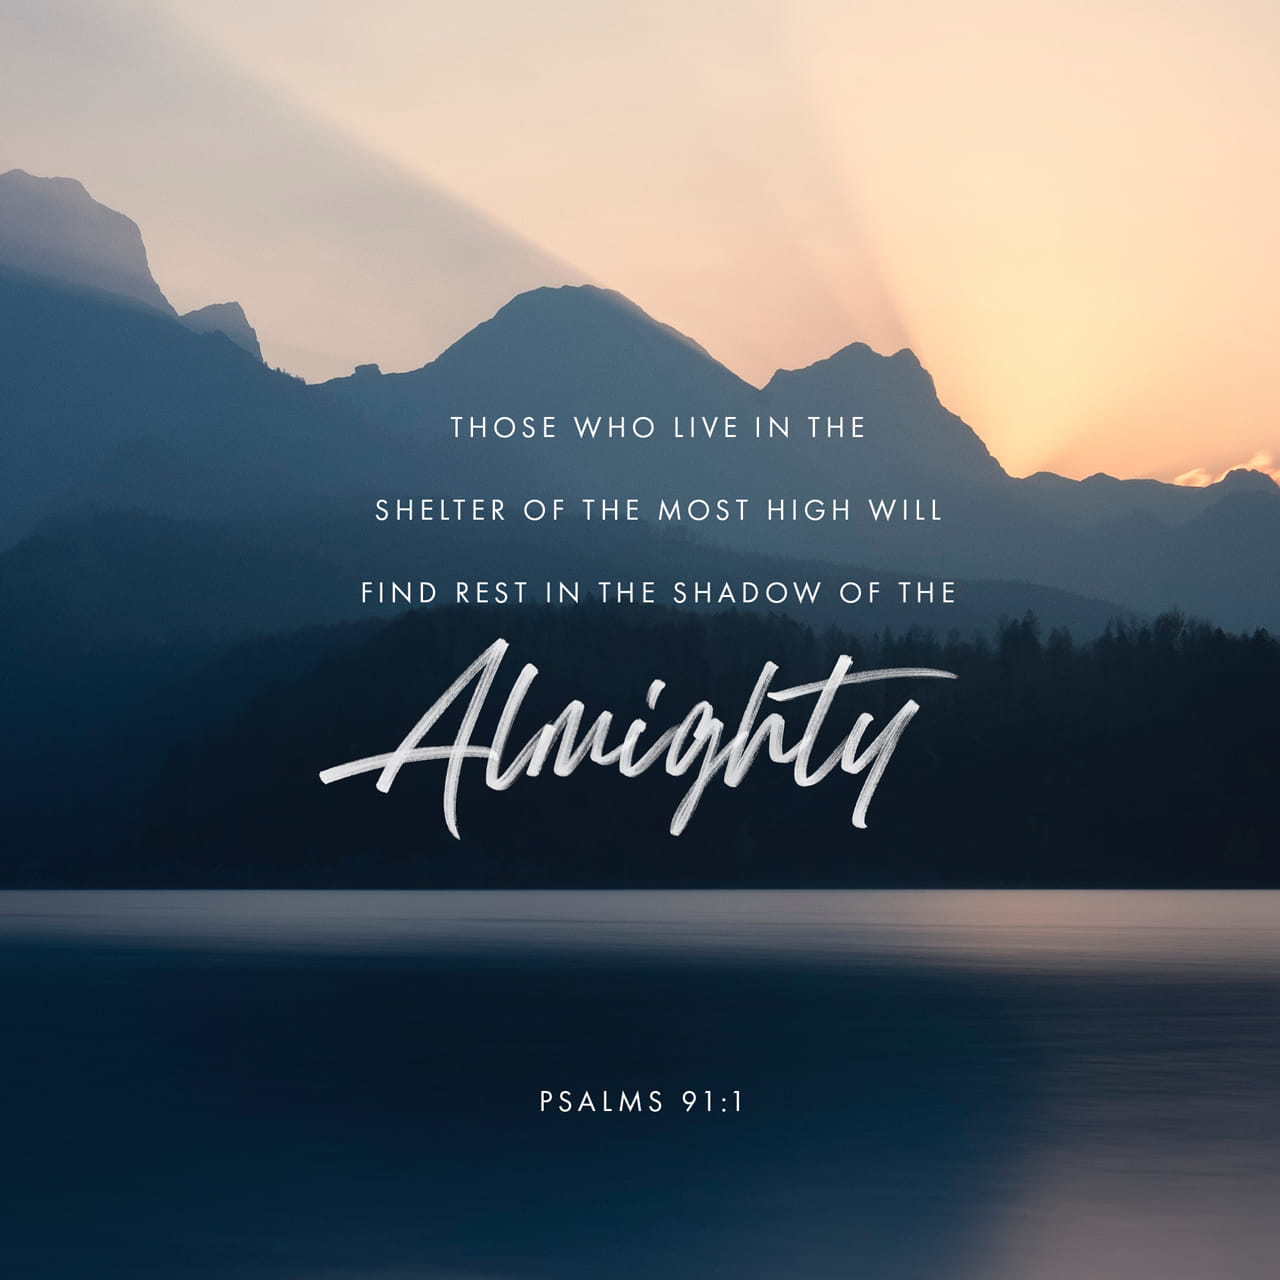 Psalms 91:1 He who dwells in the shelter of the Most High will abide in the shadow of the Almighty. | English Standard Version (ESV)